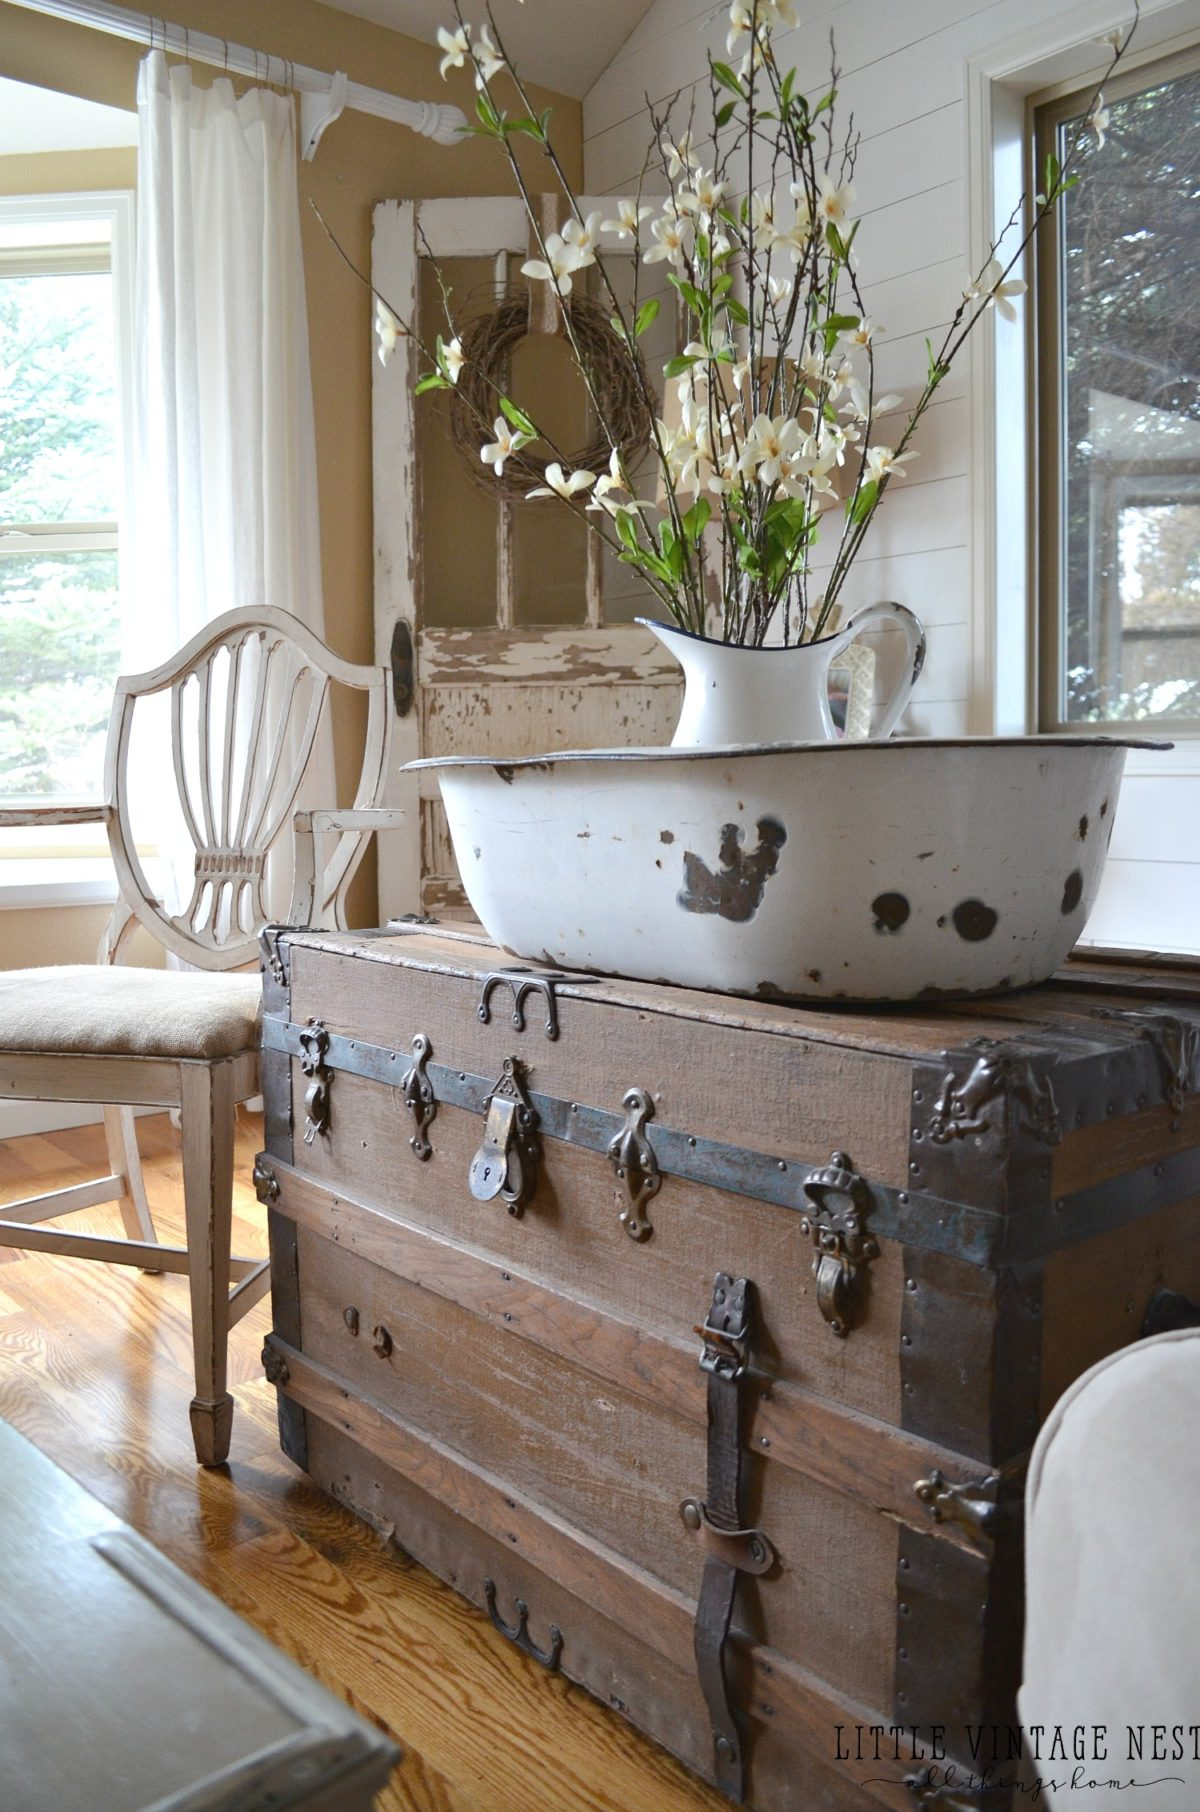 How to decorate with vintage decor little vintage nest - Vintage looking home decor gallery ...